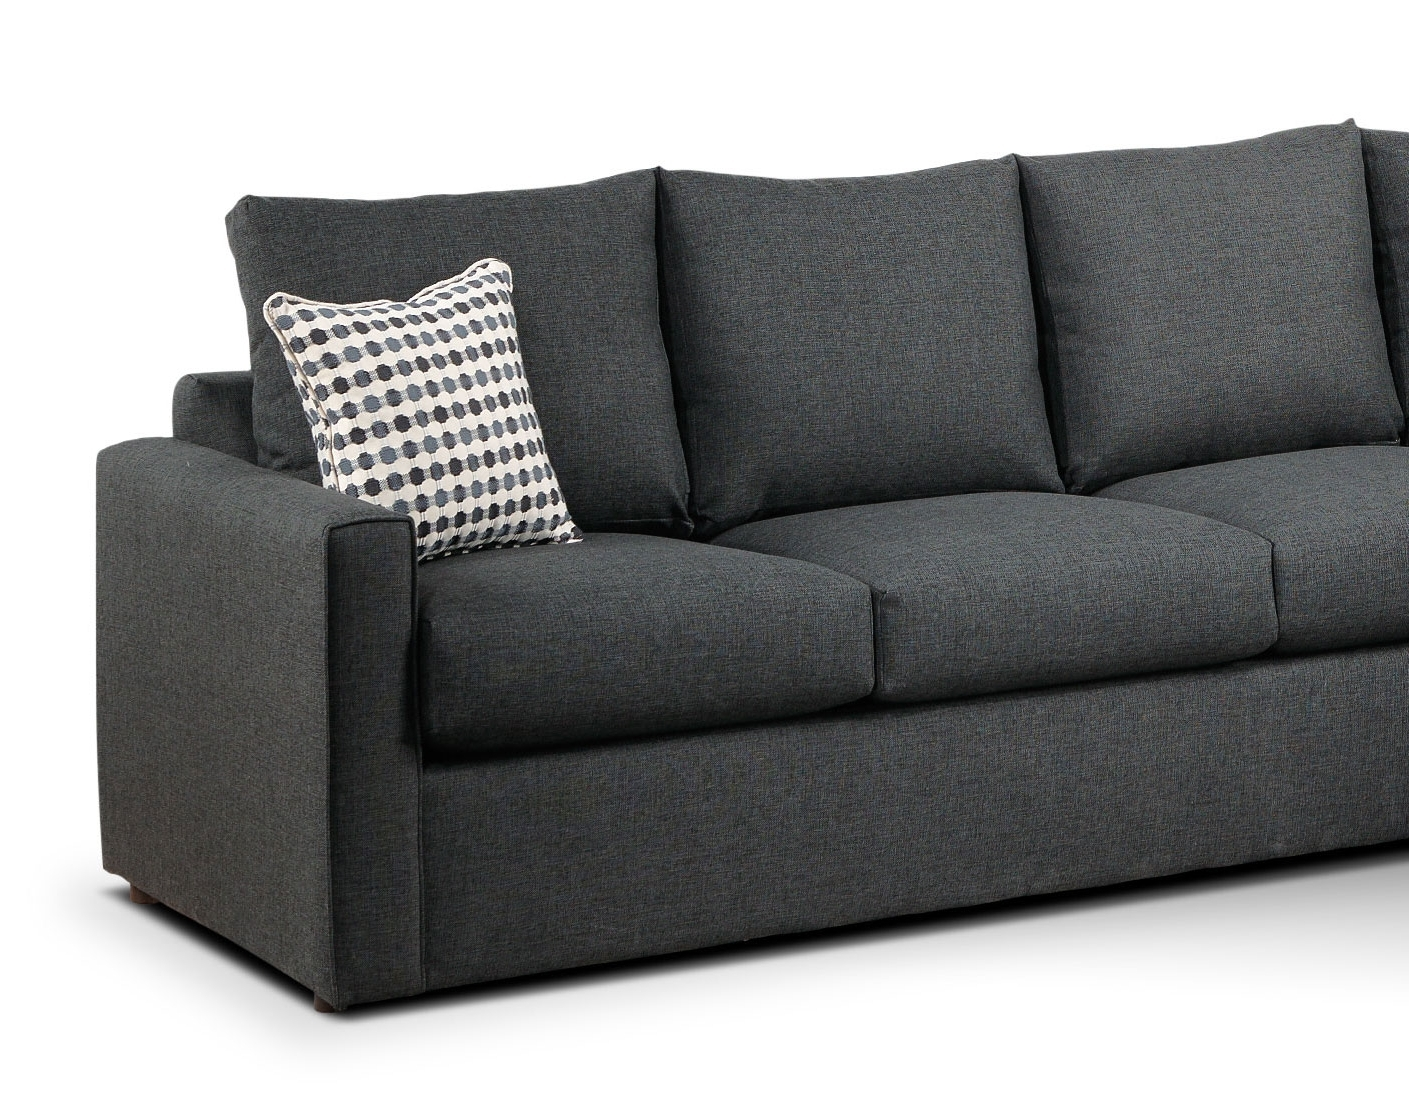 Sectional Sofas At Calgary Throughout Most Recent Athina 2 Piece Sectional With Right Facing Queen Sofa Bed (View 11 of 15)